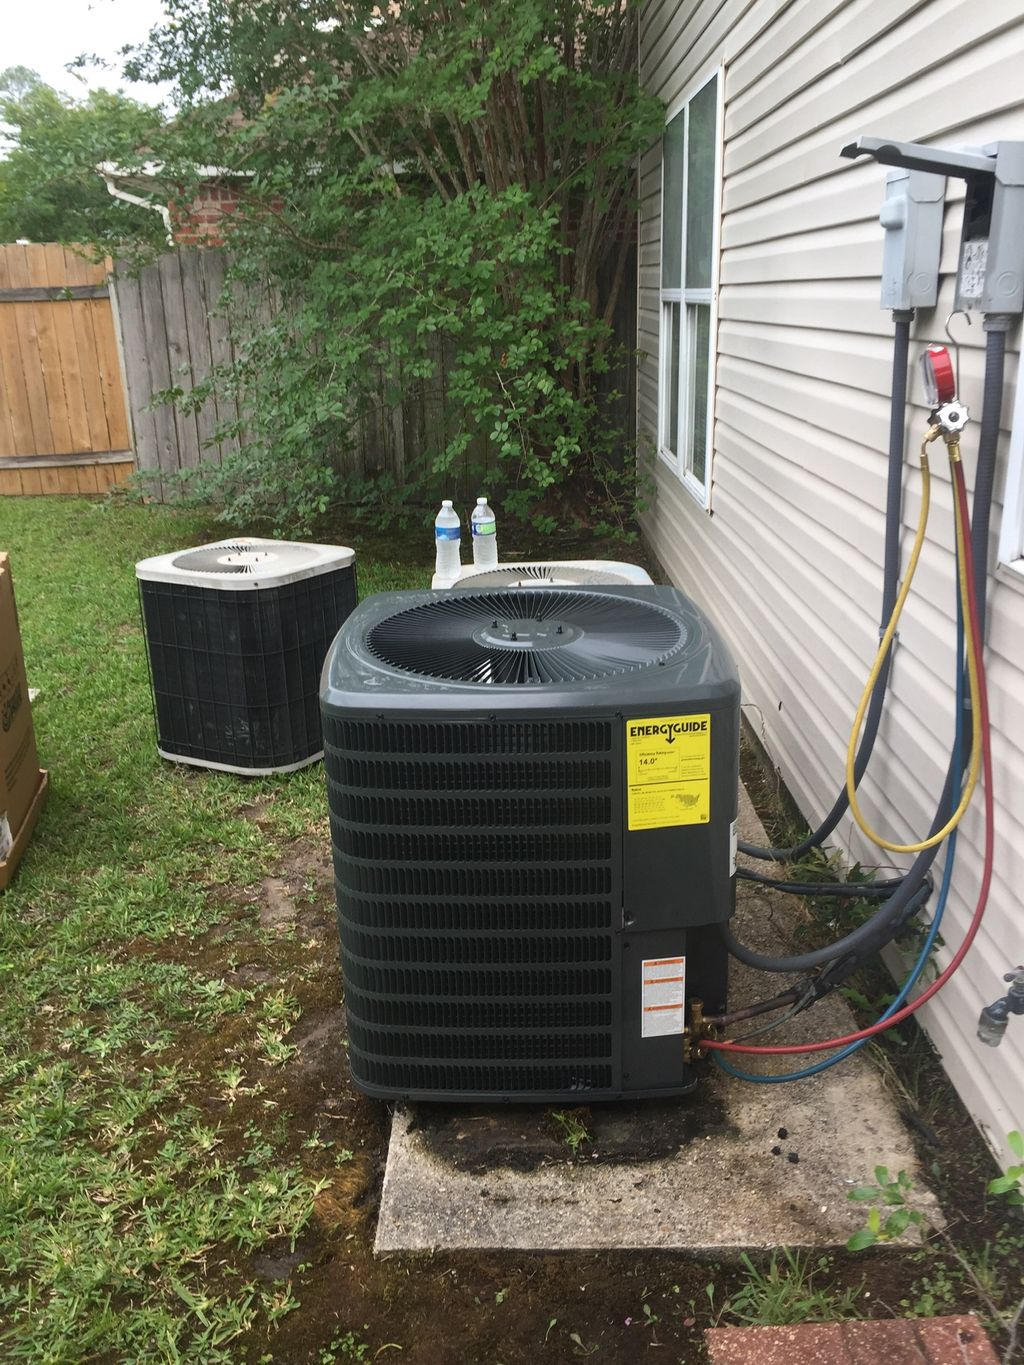 Install a new condenser